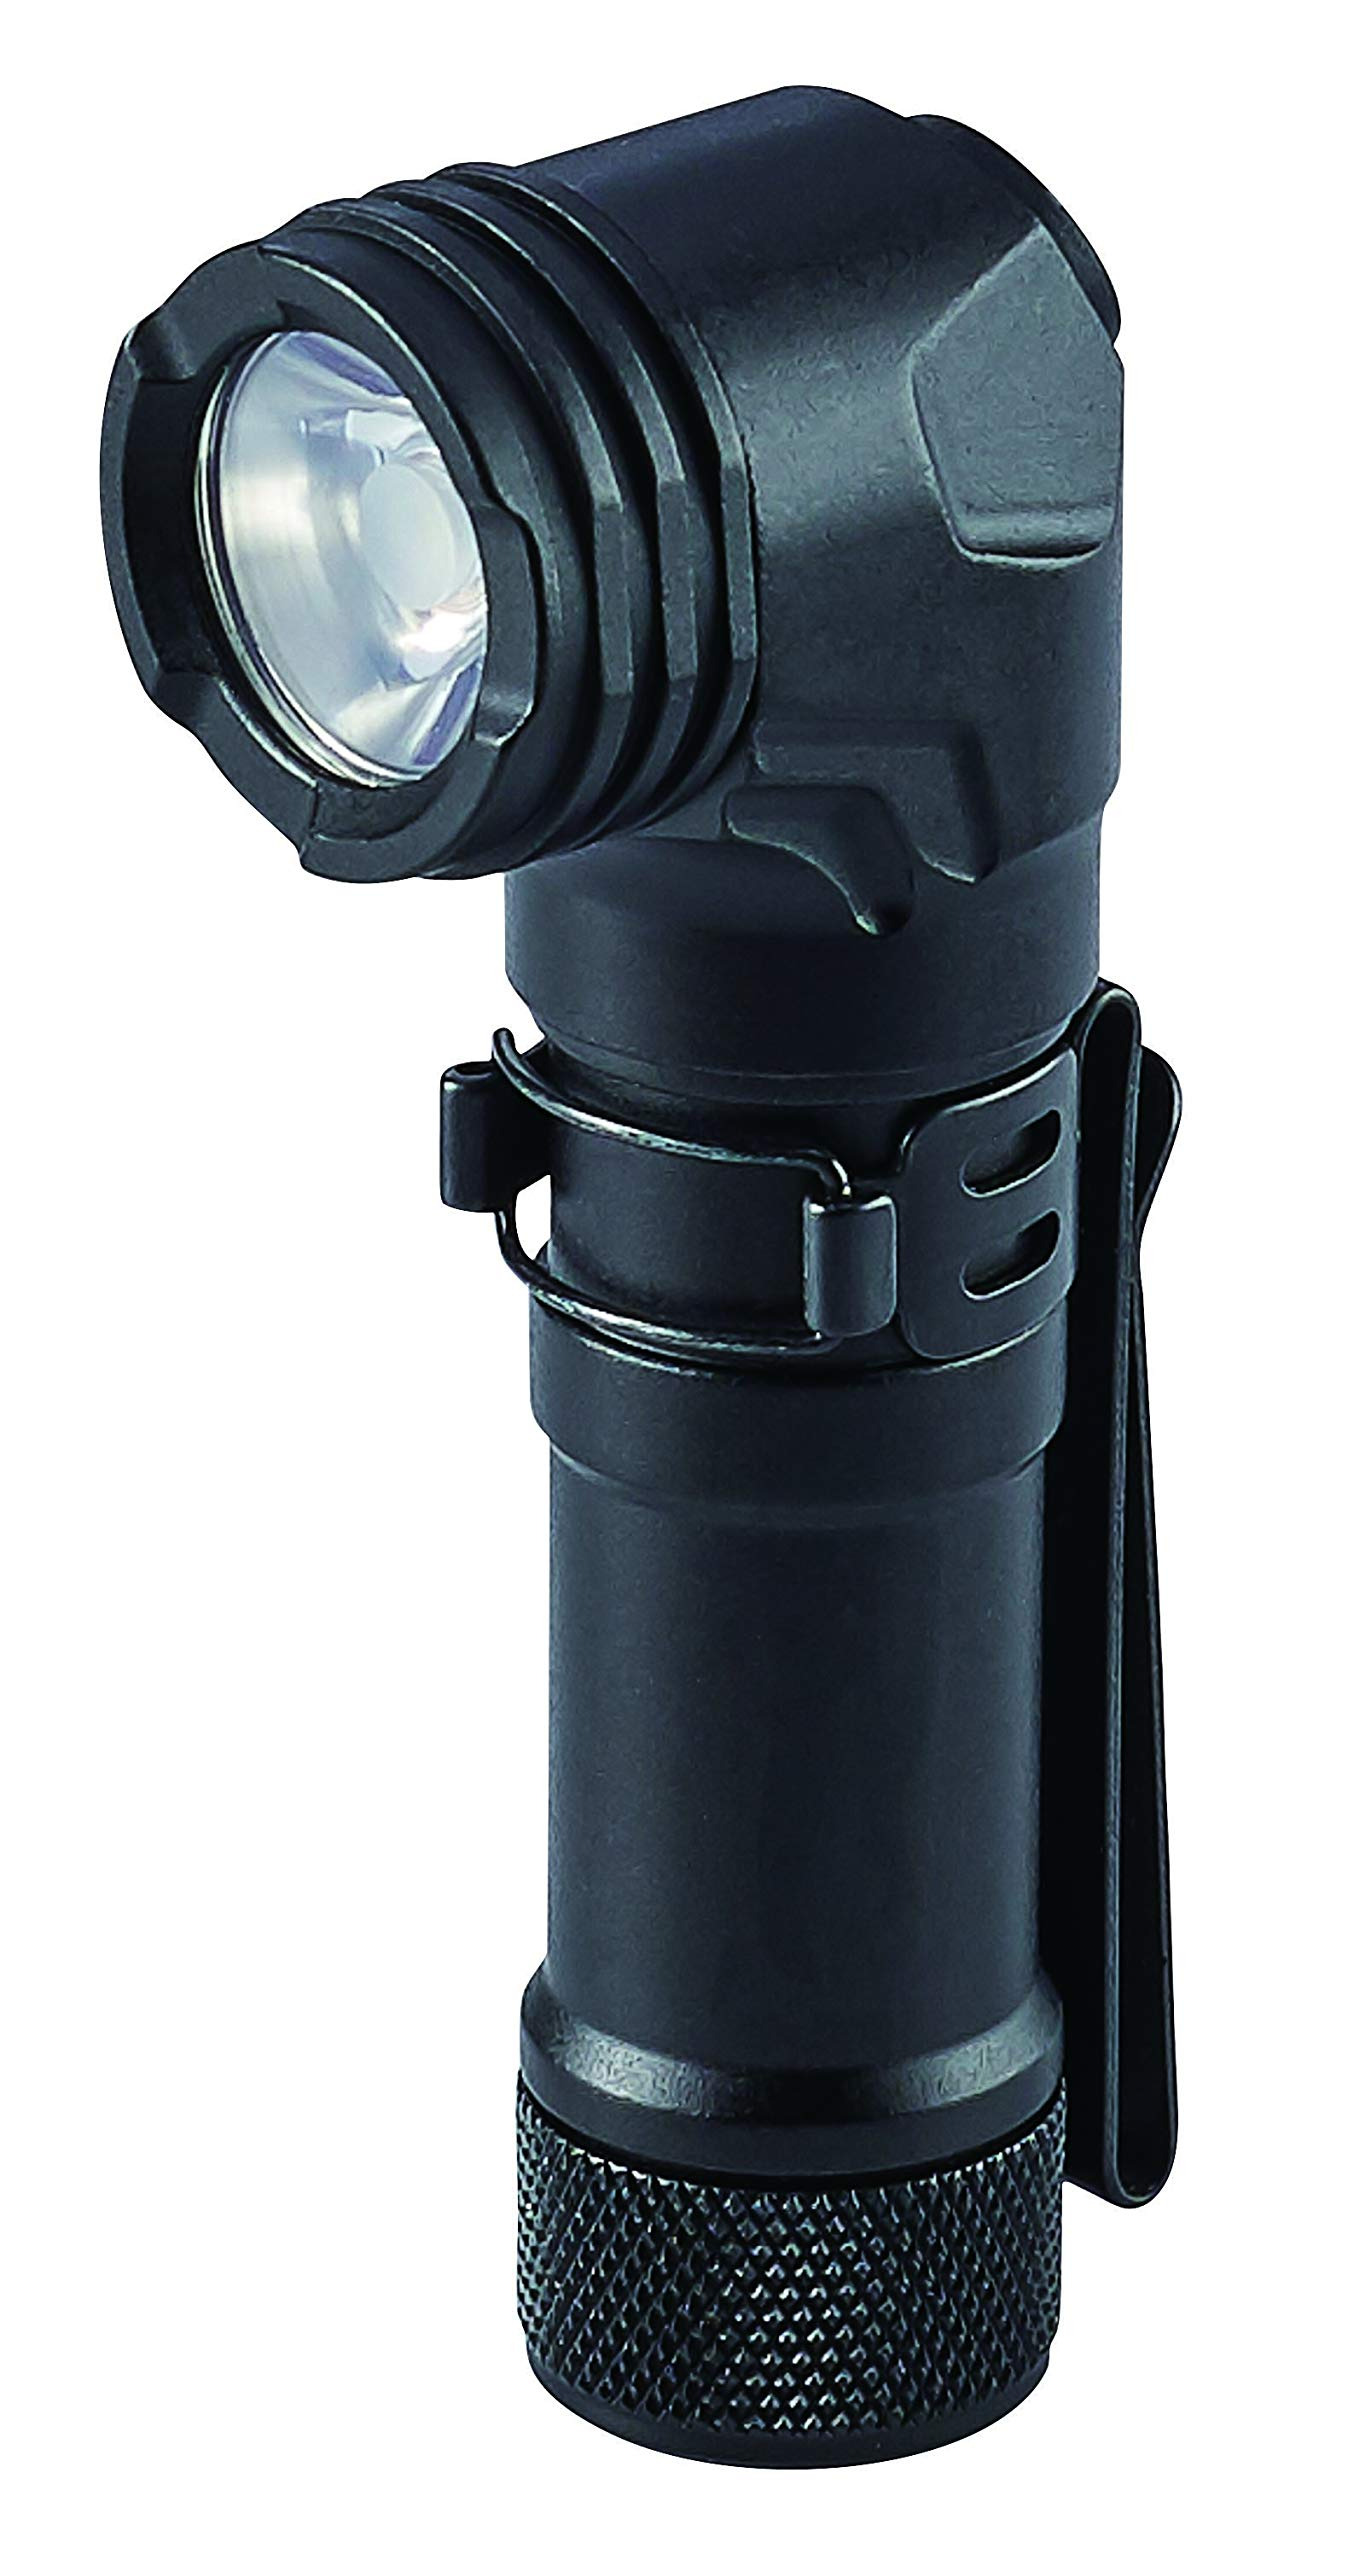 Streamlight 88087 ProTac 90 Right-Angle Light with CR123A Lithium Battery and AA Alkaline Battery - Clam